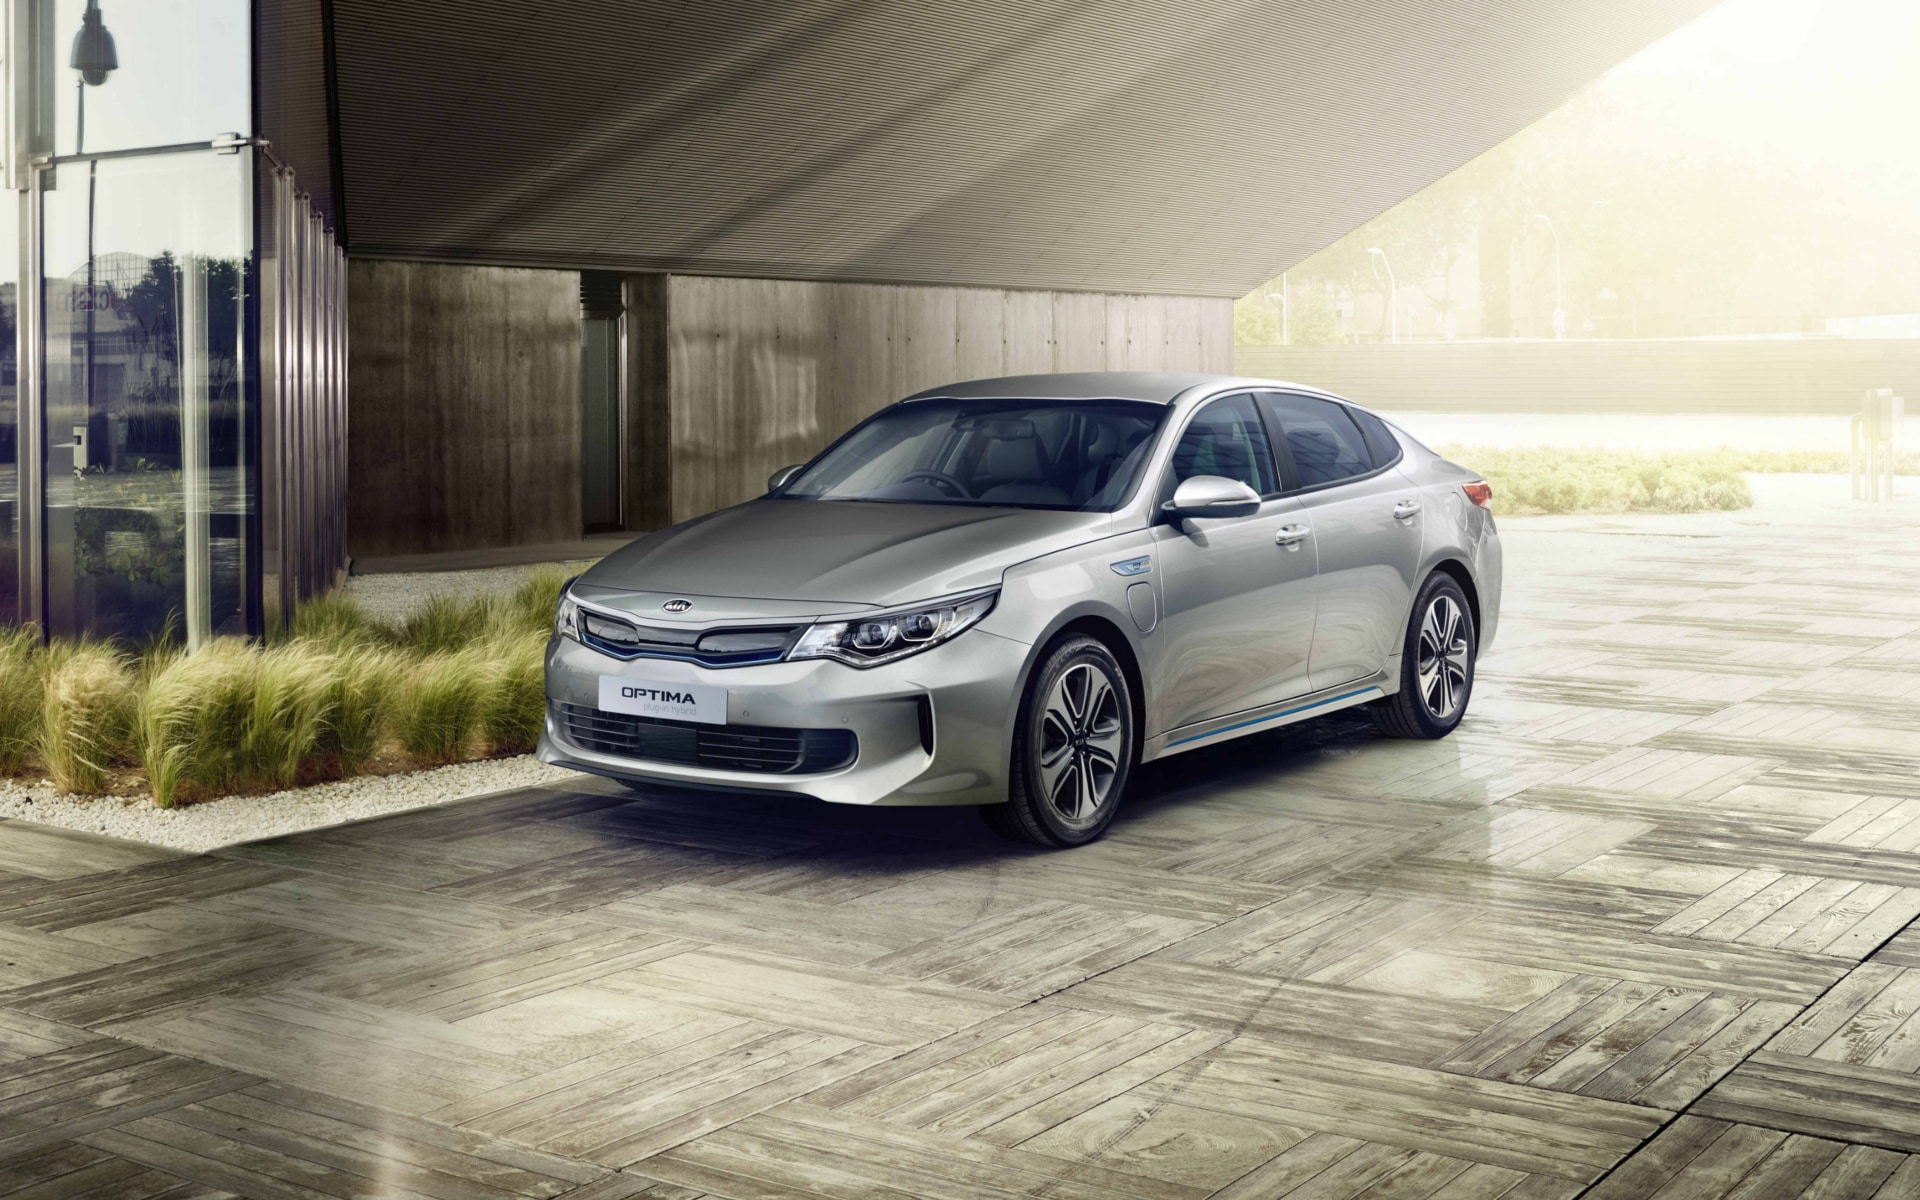 All-New Optima Plug-In Hybrid parked outside of contemporary house